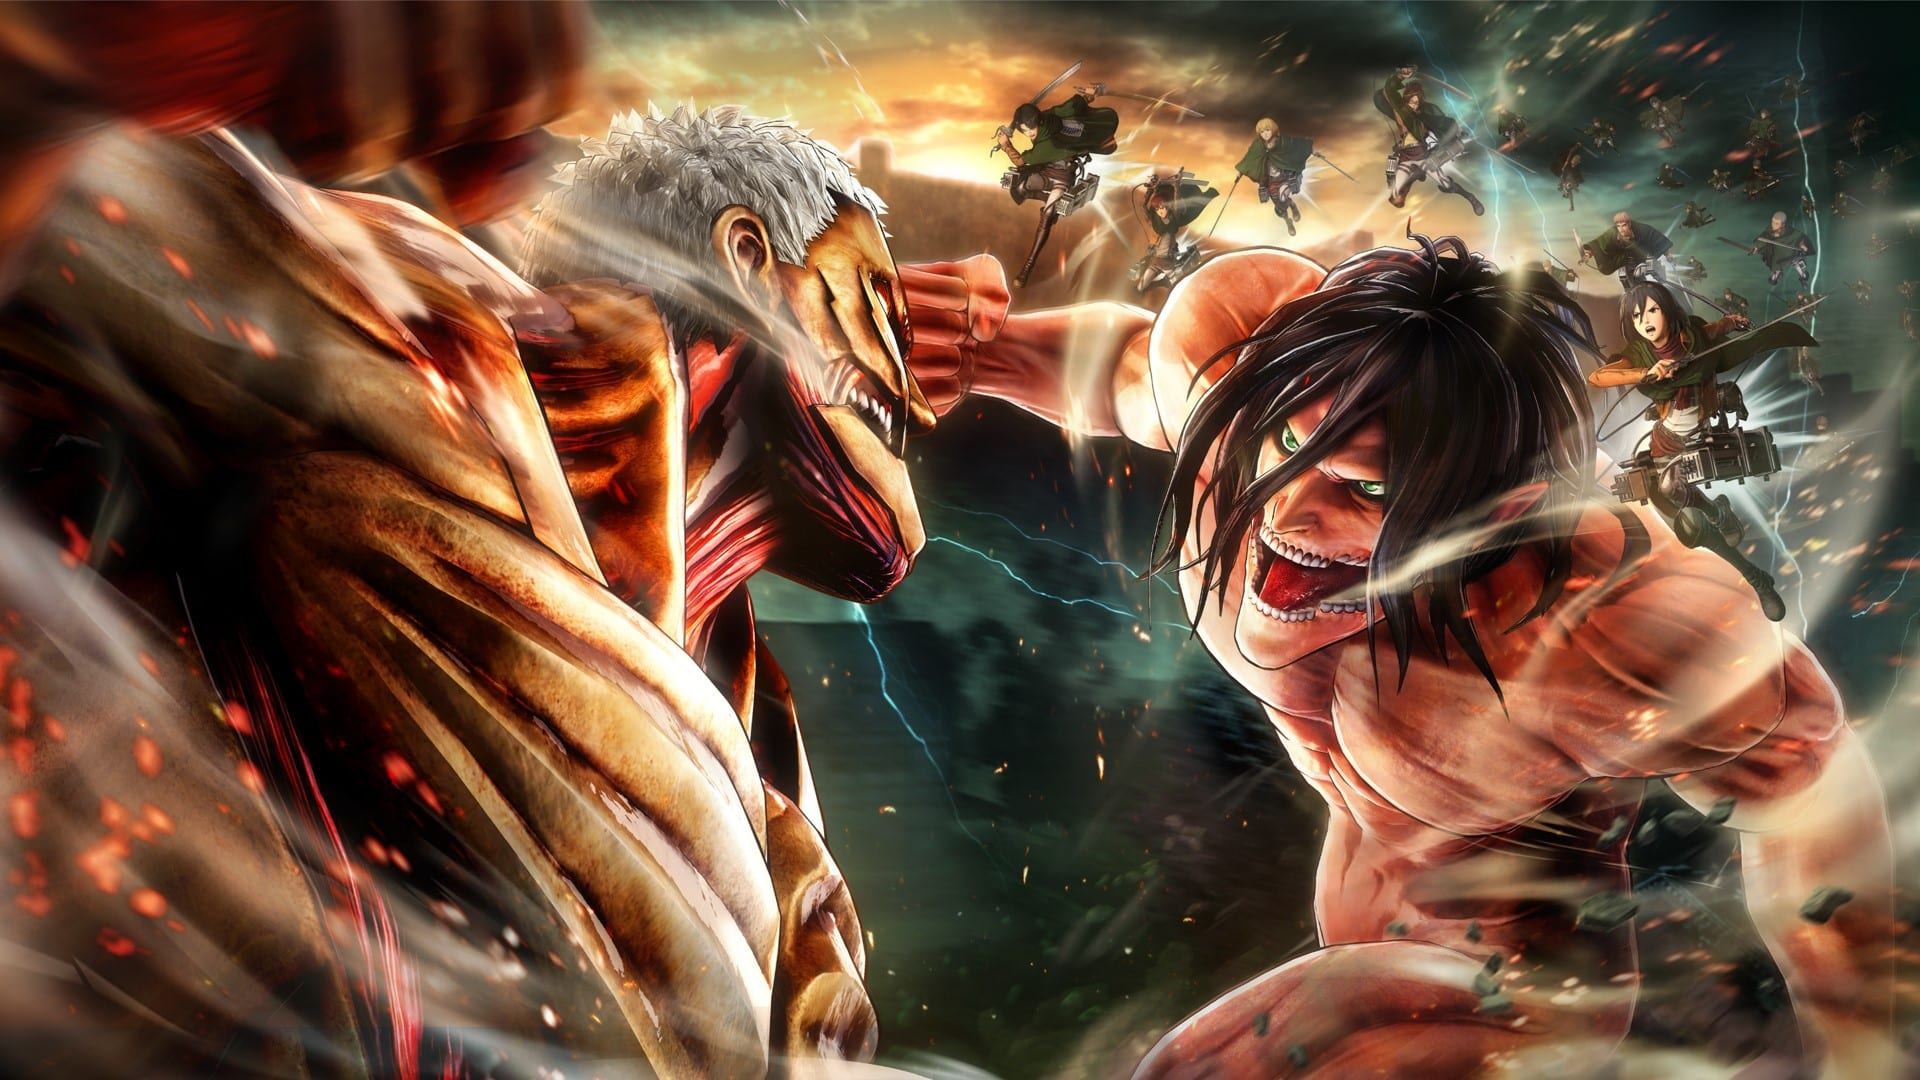 Attack On Titan 2 game announced for 2018